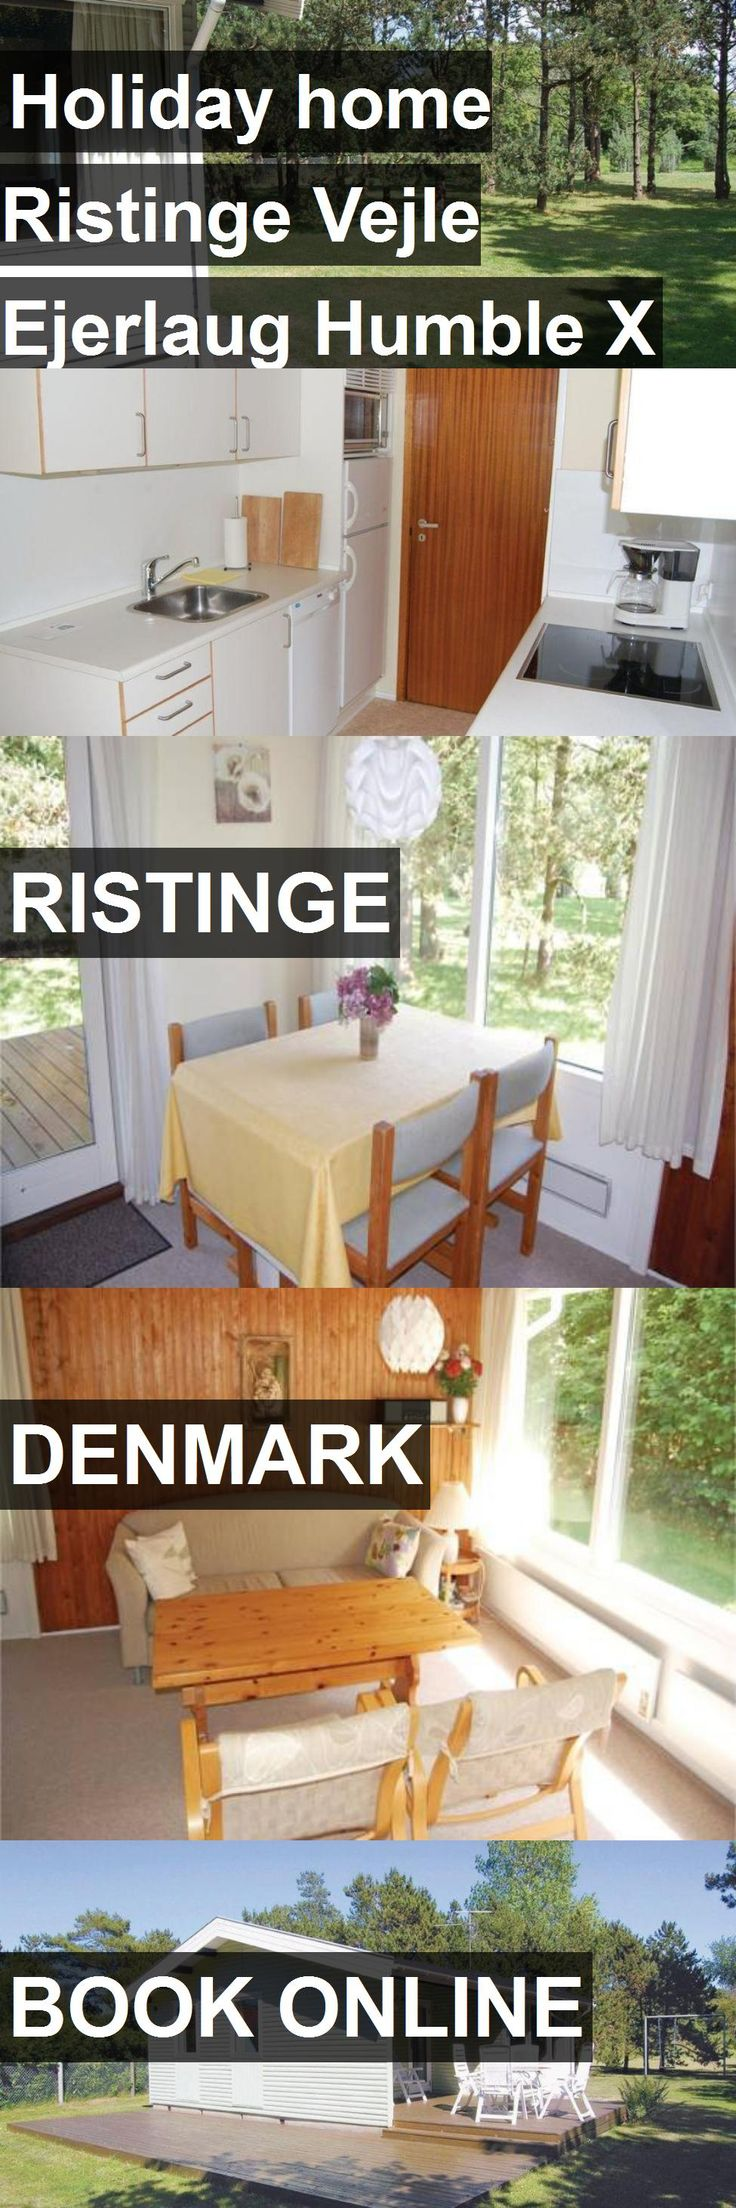 Hotel Holiday home Ristinge Vejle Ejerlaug Humble X in Ristinge, Denmark. For more information, photos, reviews and best prices please follow the link. #Denmark #Ristinge #travel #vacation #hotel